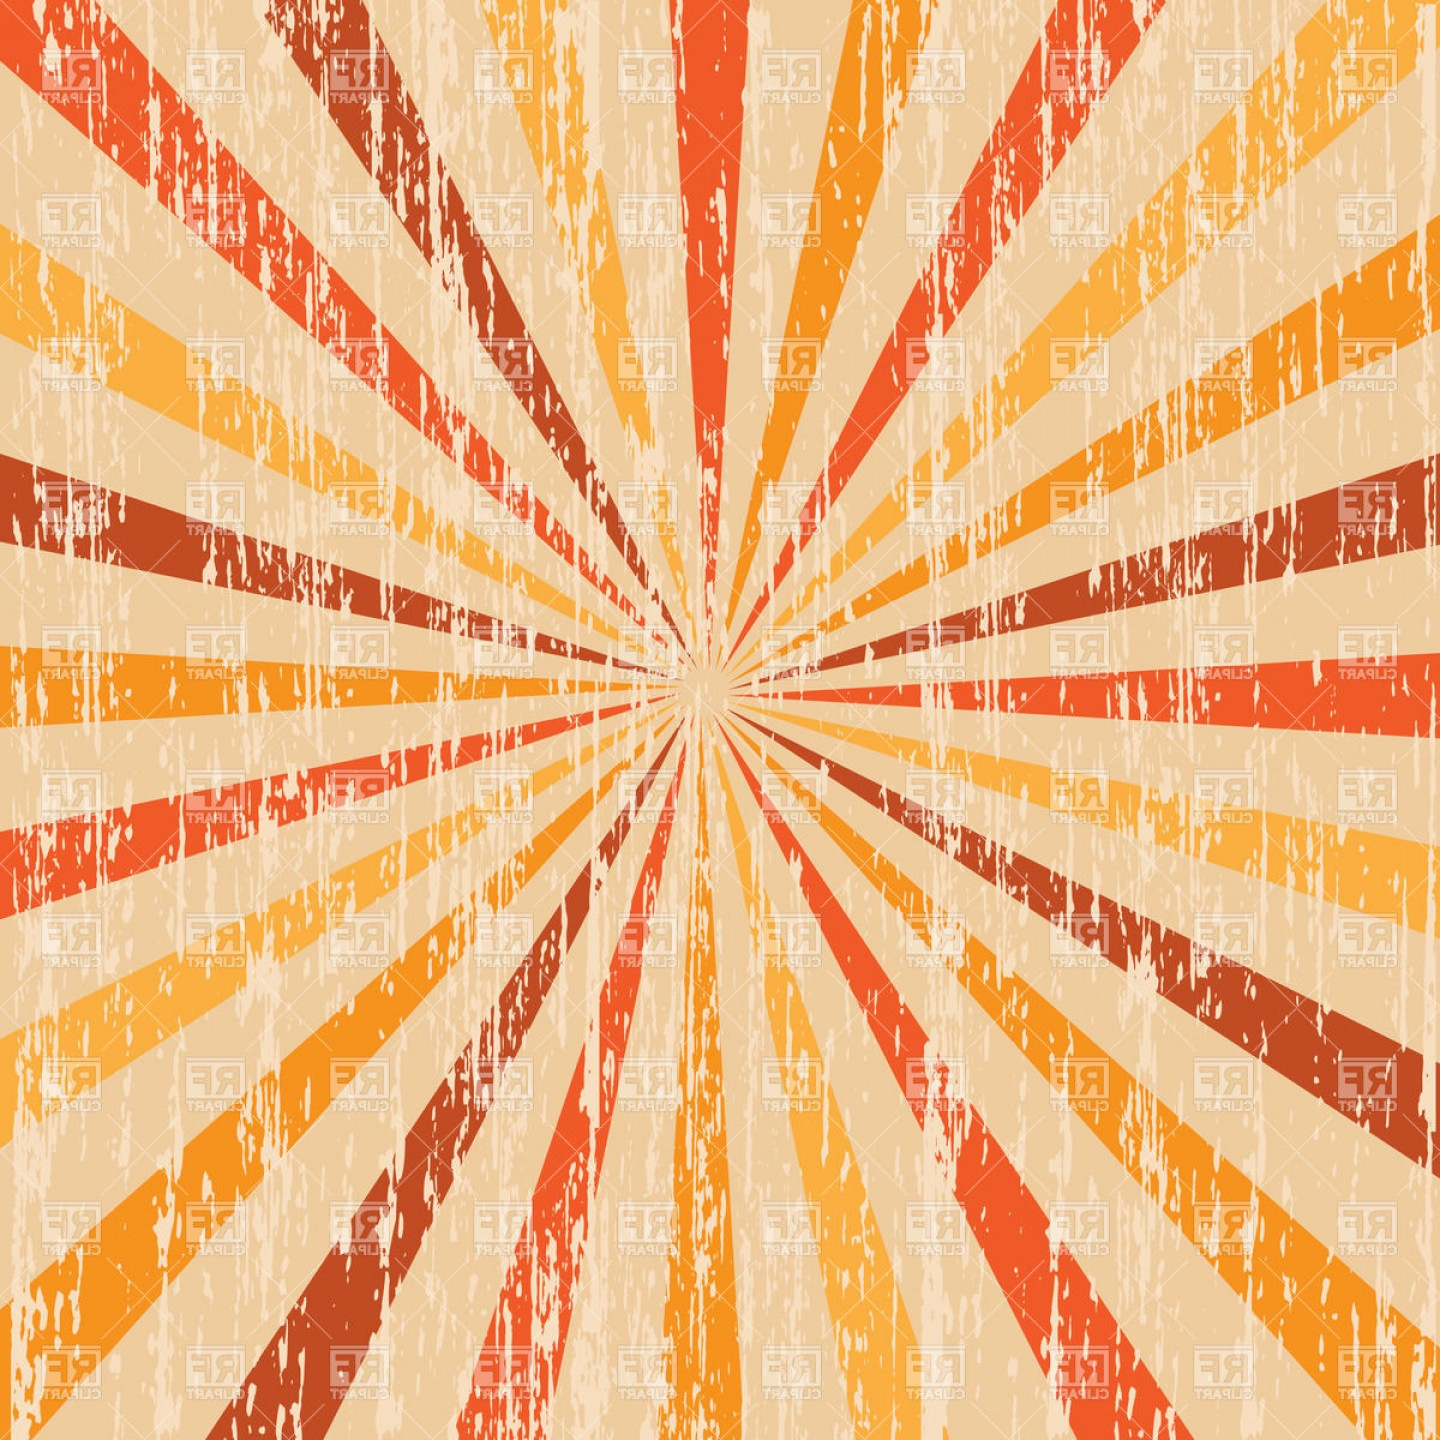 Abstract Vector Backgrounds For Photoshop: Festive Shabby Background With Red And Orange Rays Vector Clipart